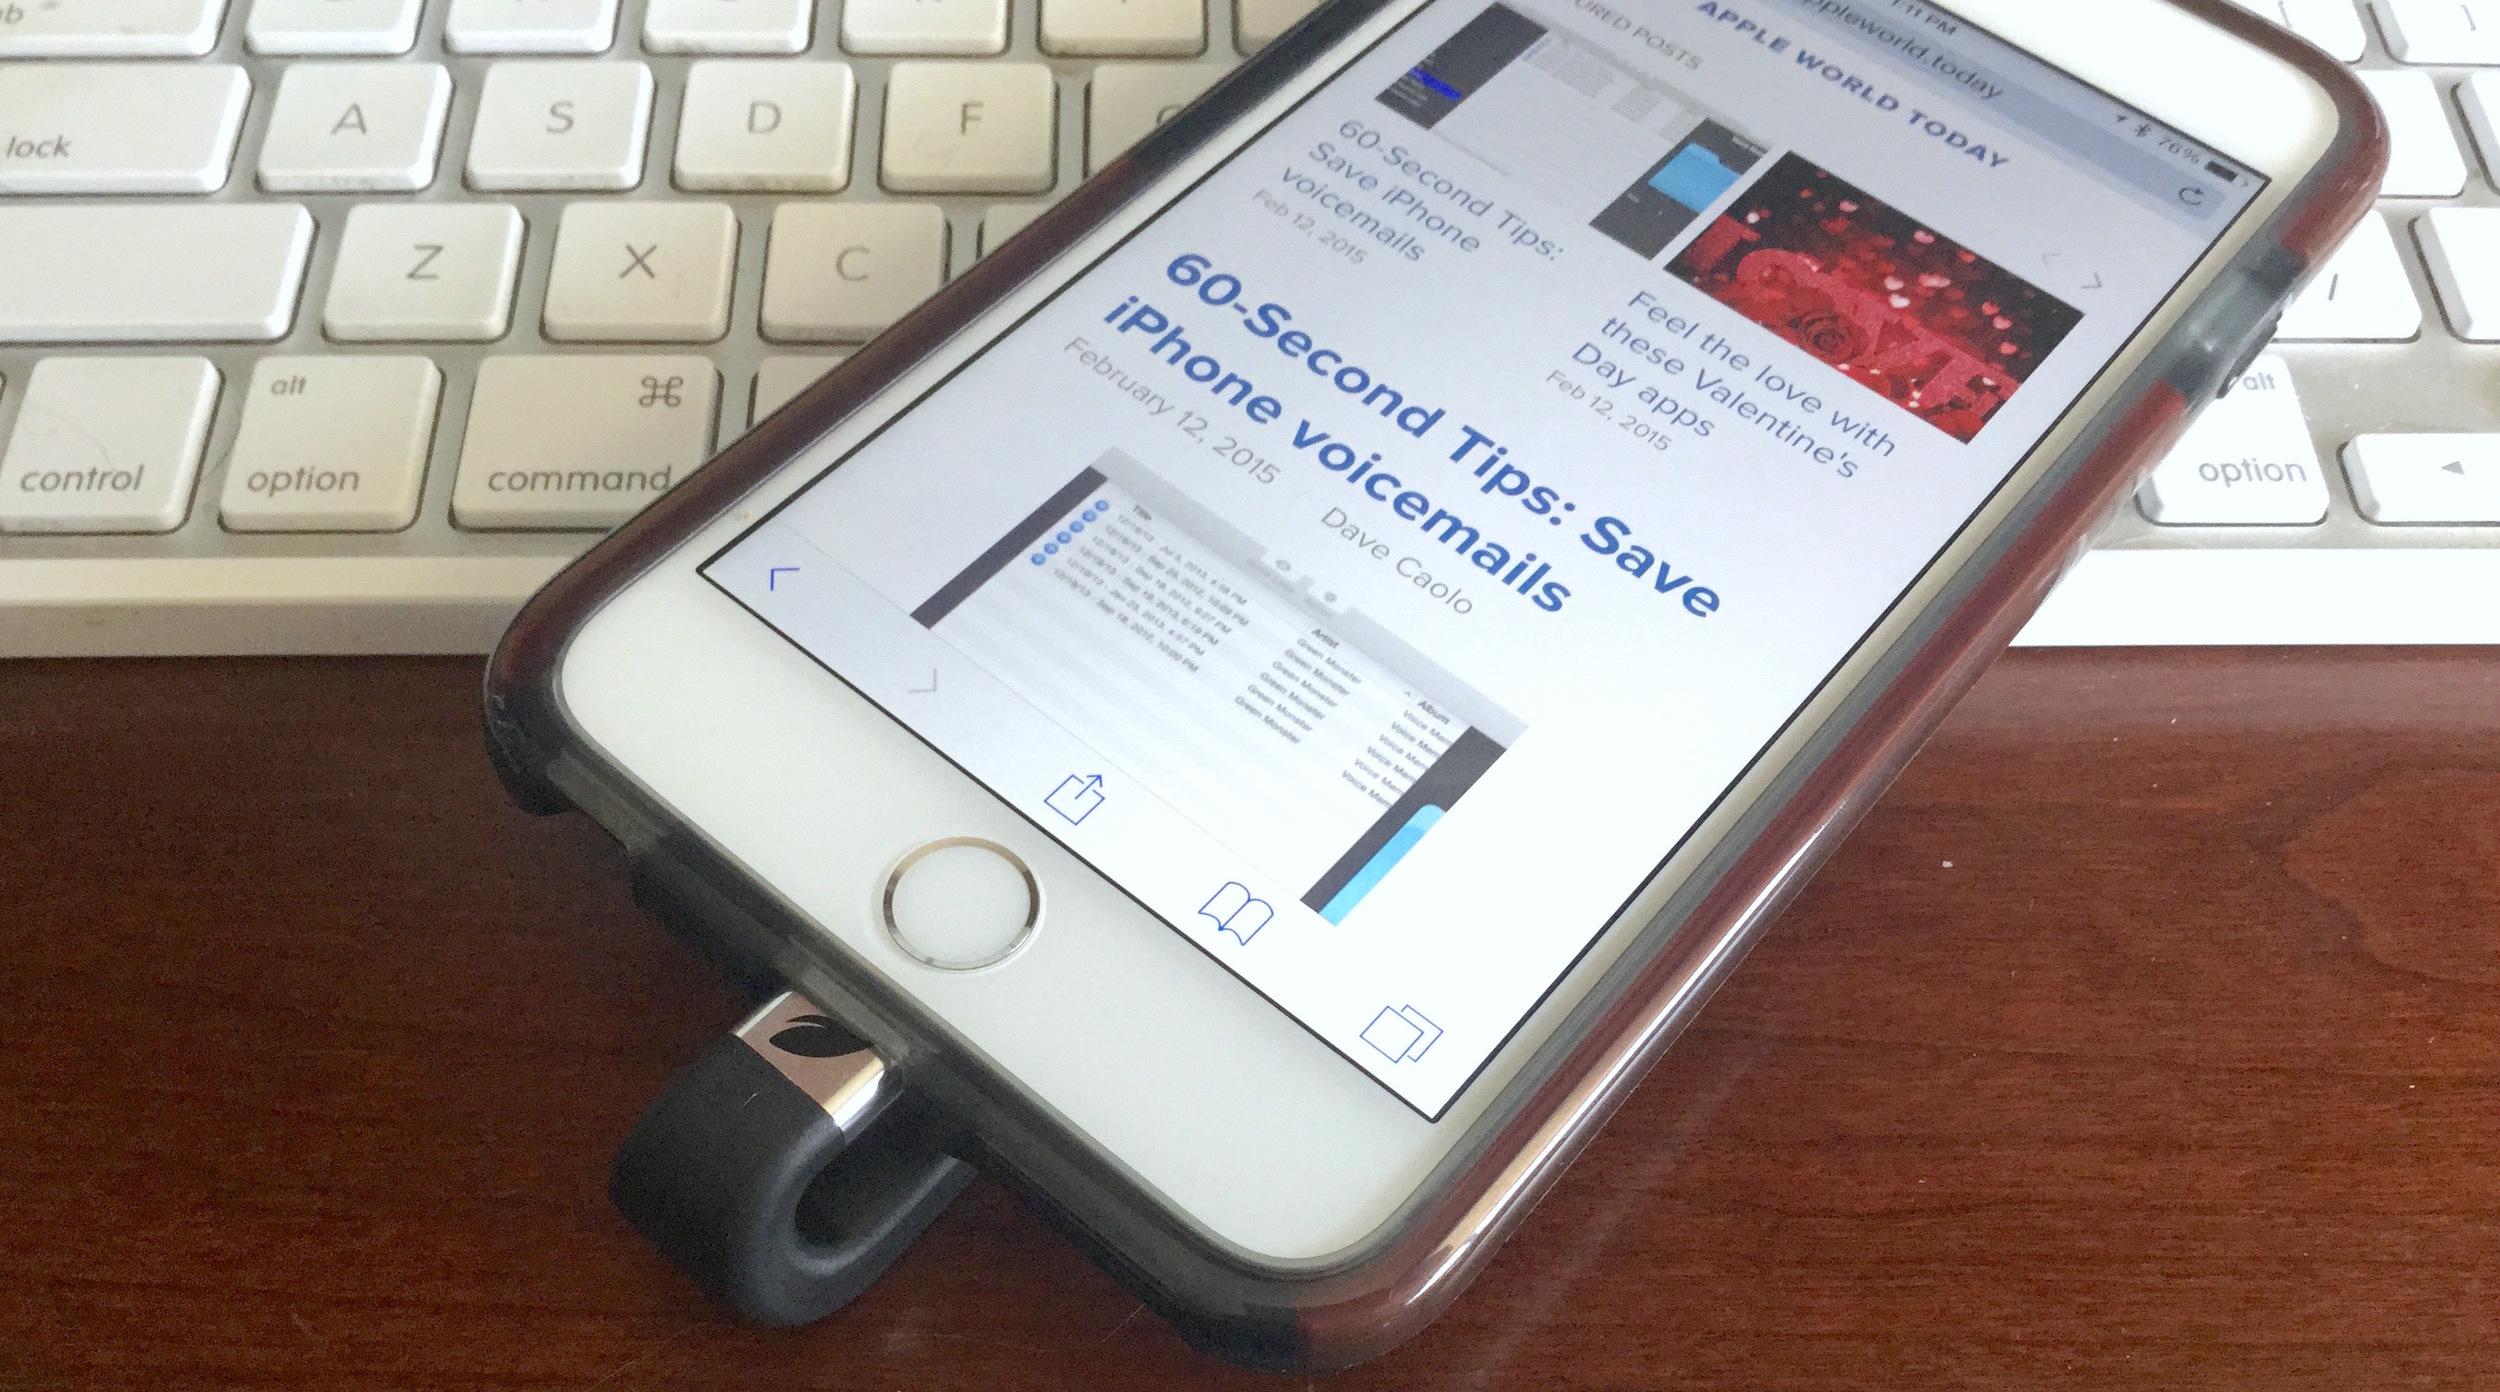 32GB Leef ibridge connected to iphone 6 plus. photo by steven sande, apple world today